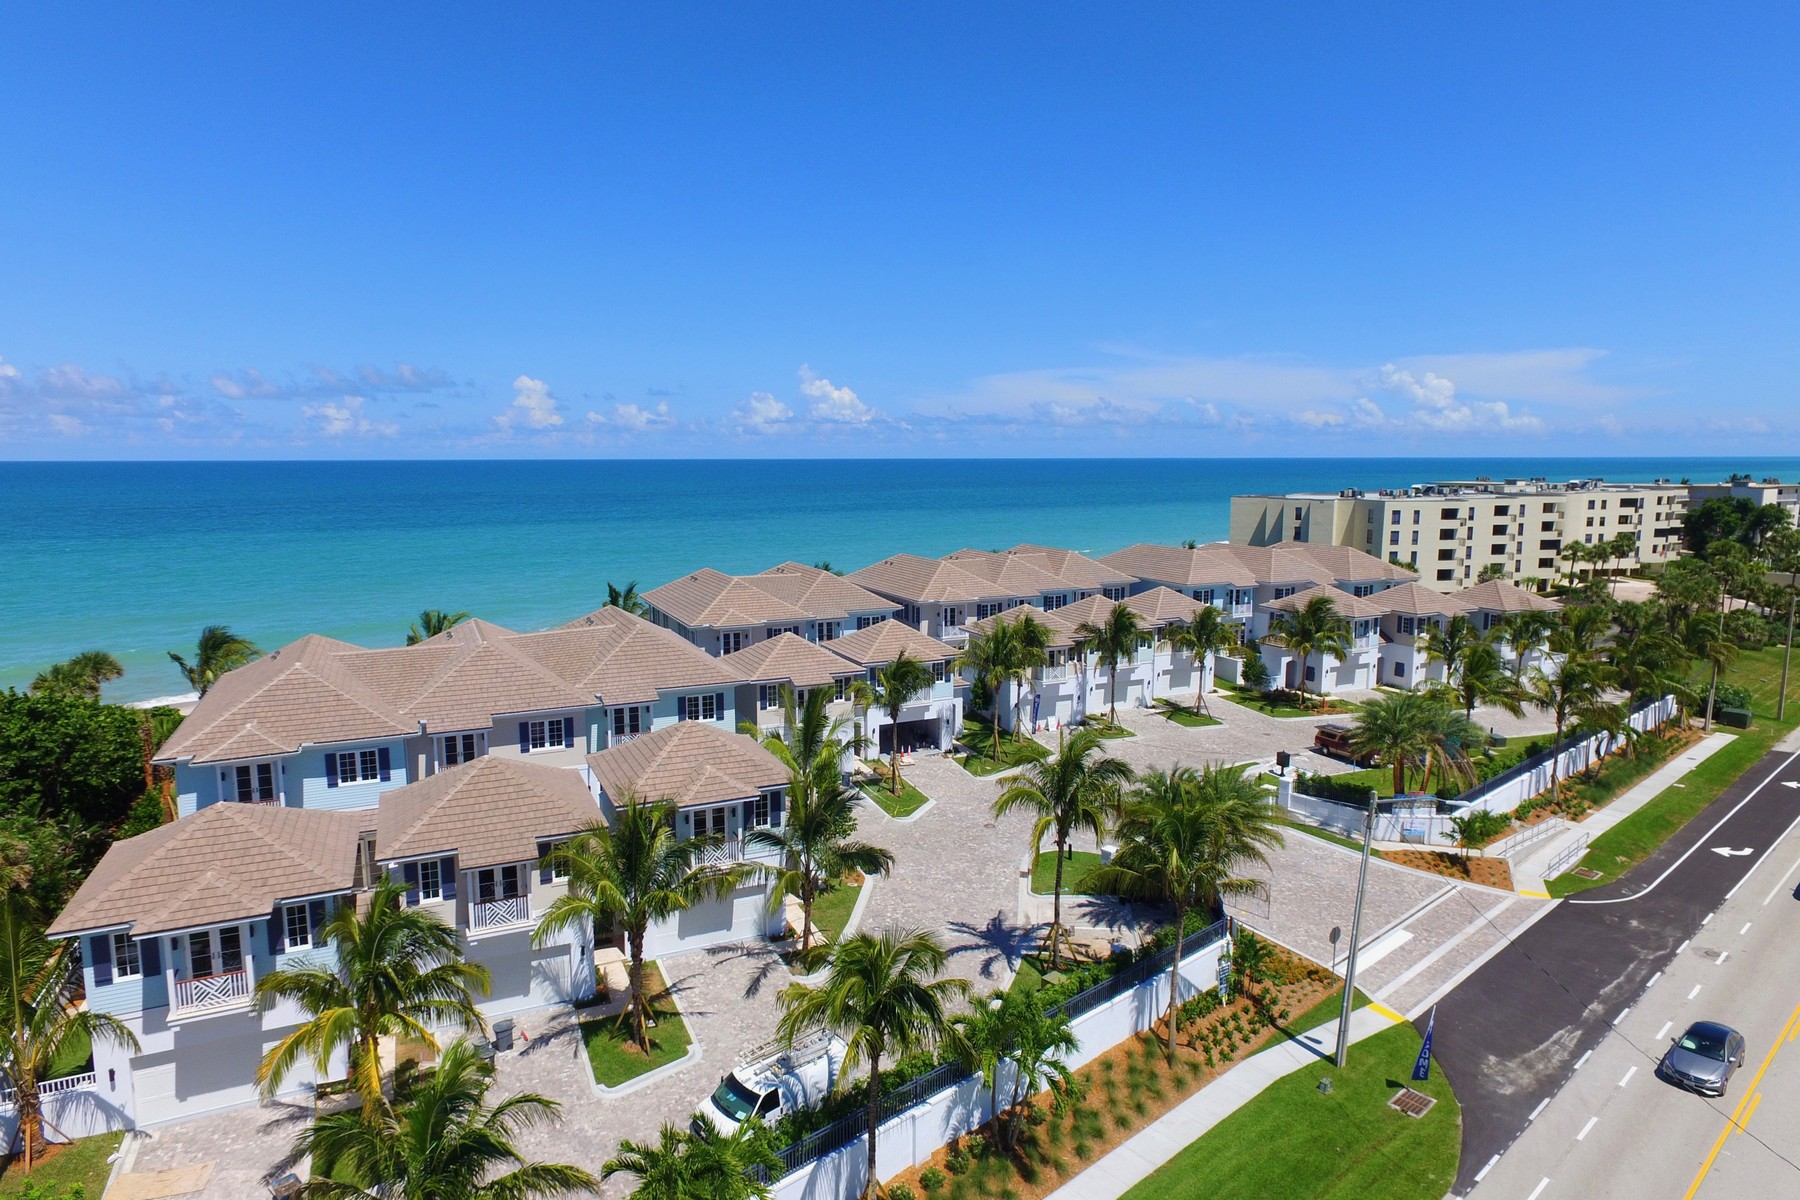 Maison unifamiliale pour l Vente à Surf Club! TBC Luxurious End Unit 4798 Highway A1A Unit #1 Vero Beach, Florida, 32963 États-Unis